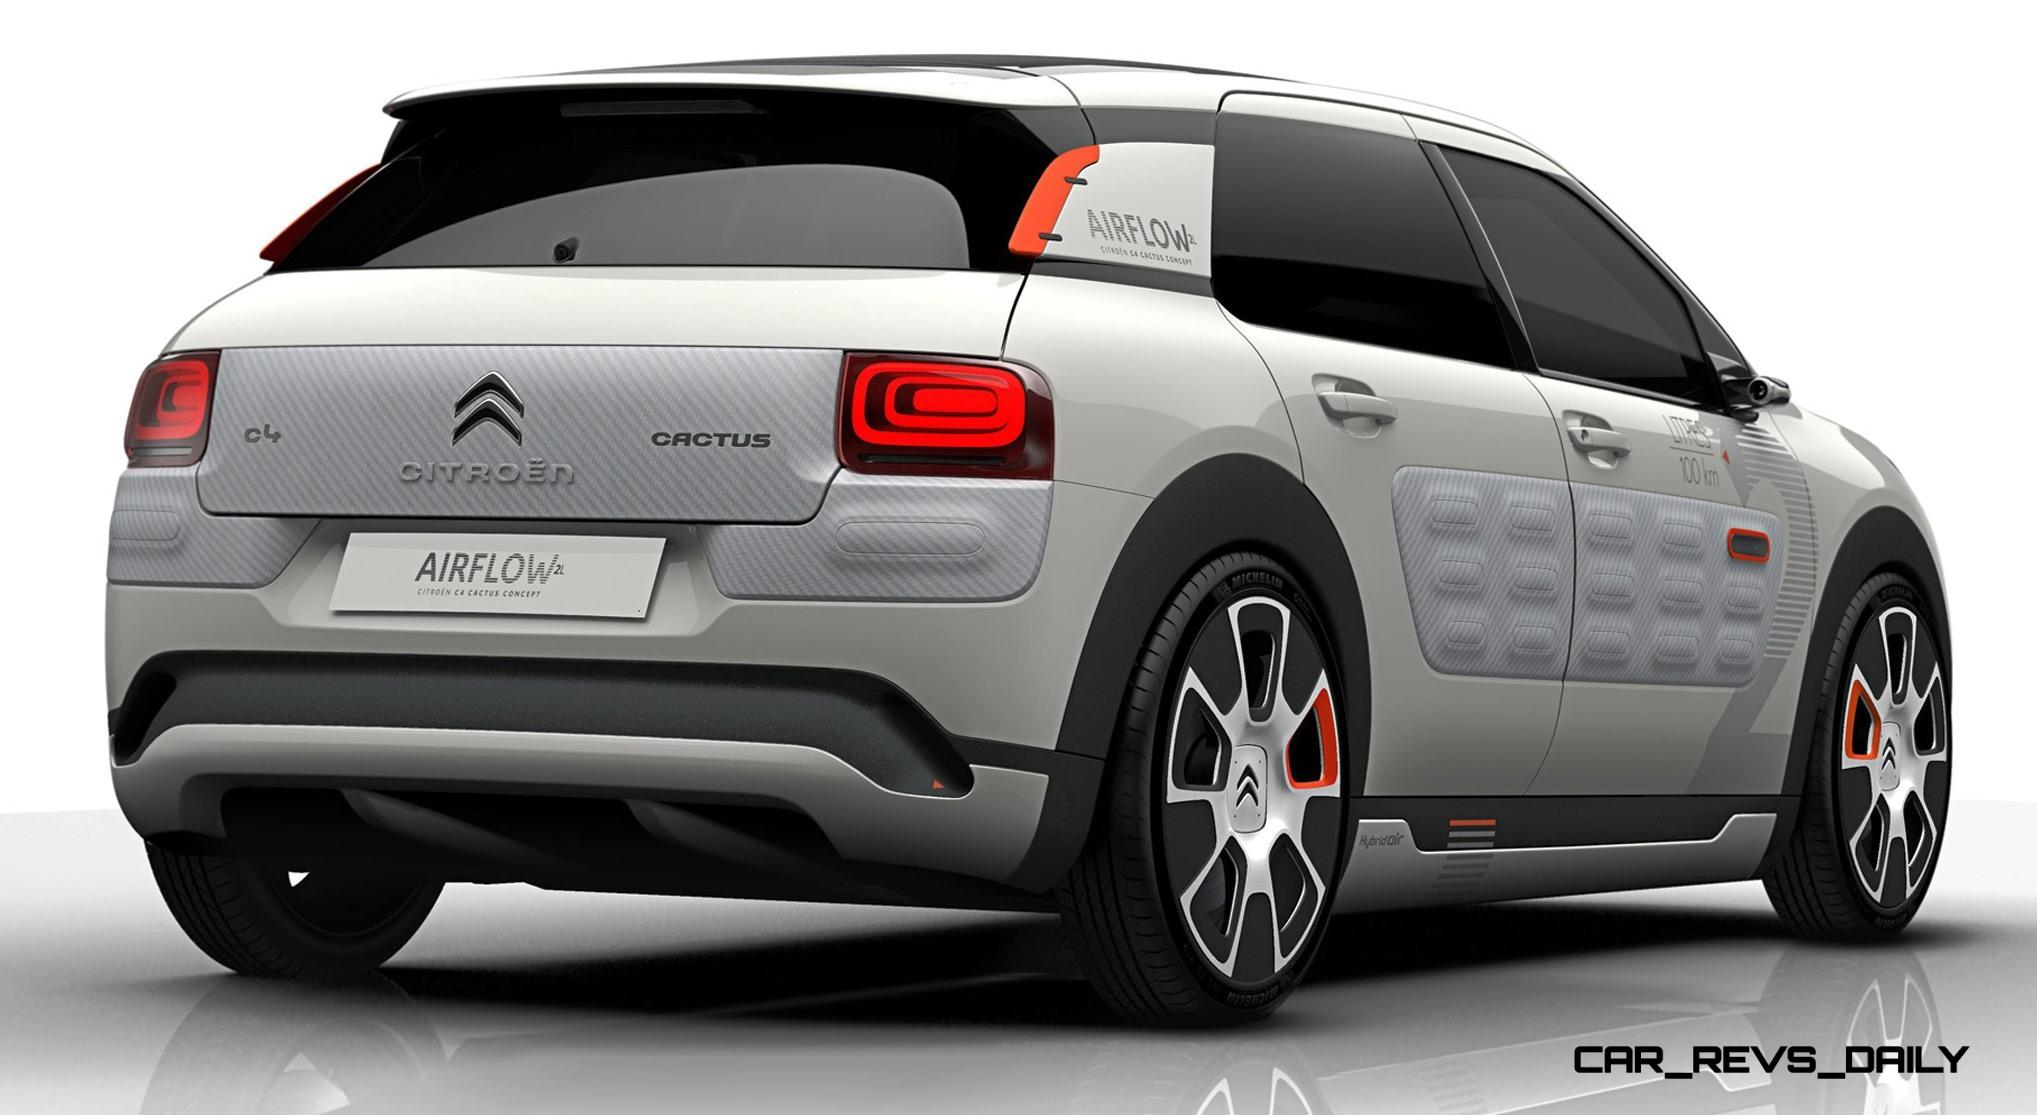 2014 citroen c4 cactus 2l airflow brings 141 mpg via active aero and compressed air hybrid. Black Bedroom Furniture Sets. Home Design Ideas